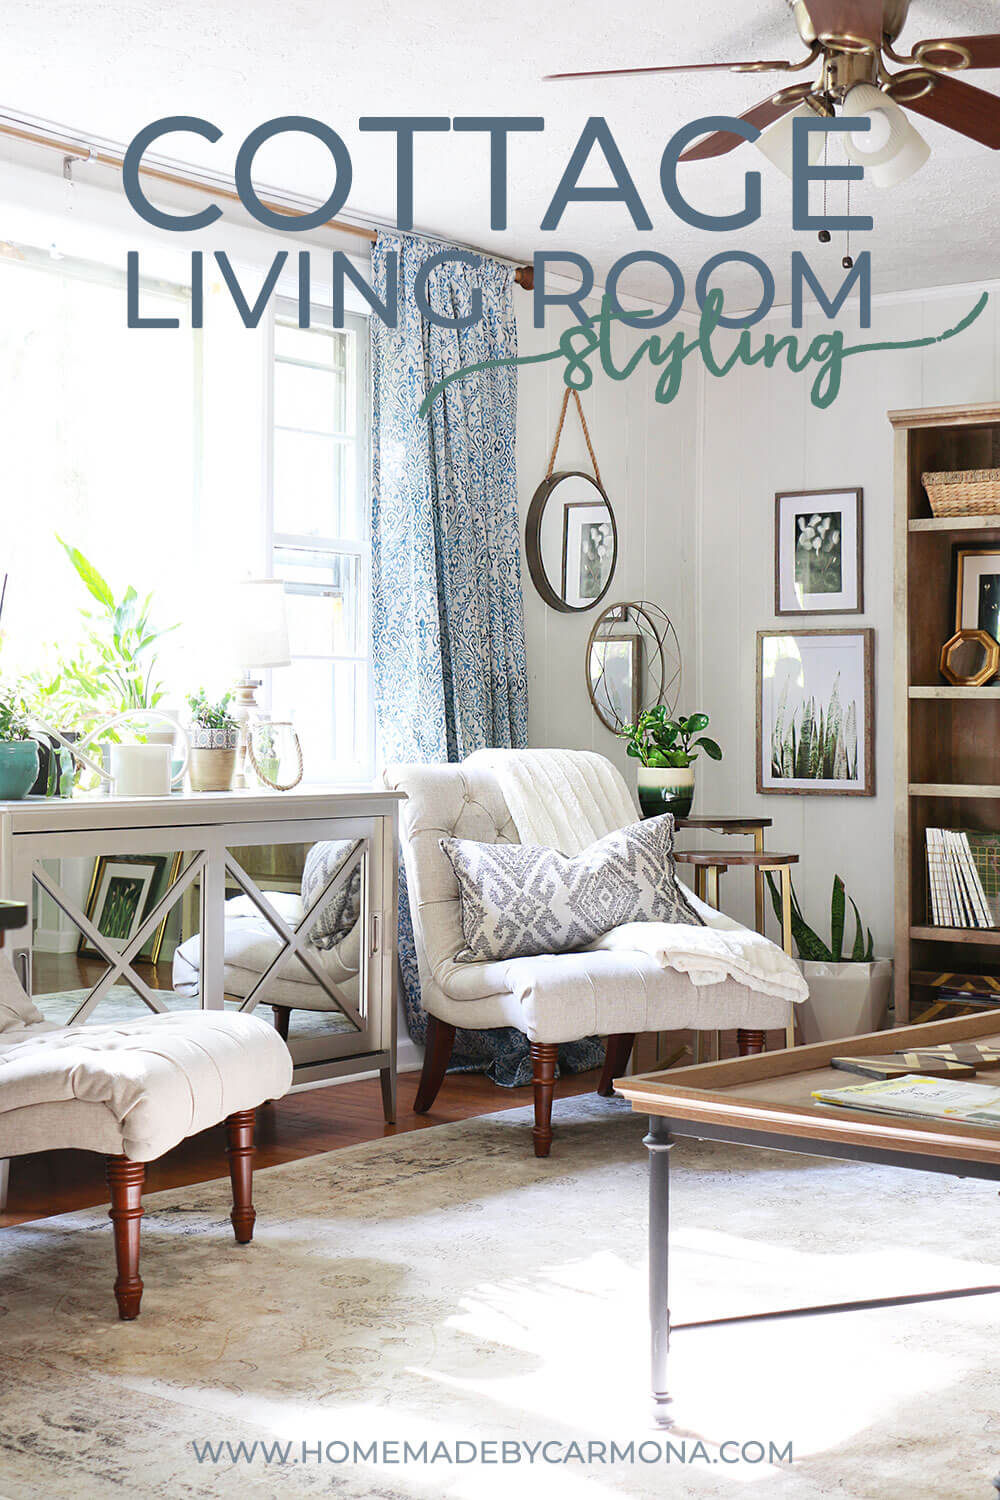 Cottage-living-room-styling